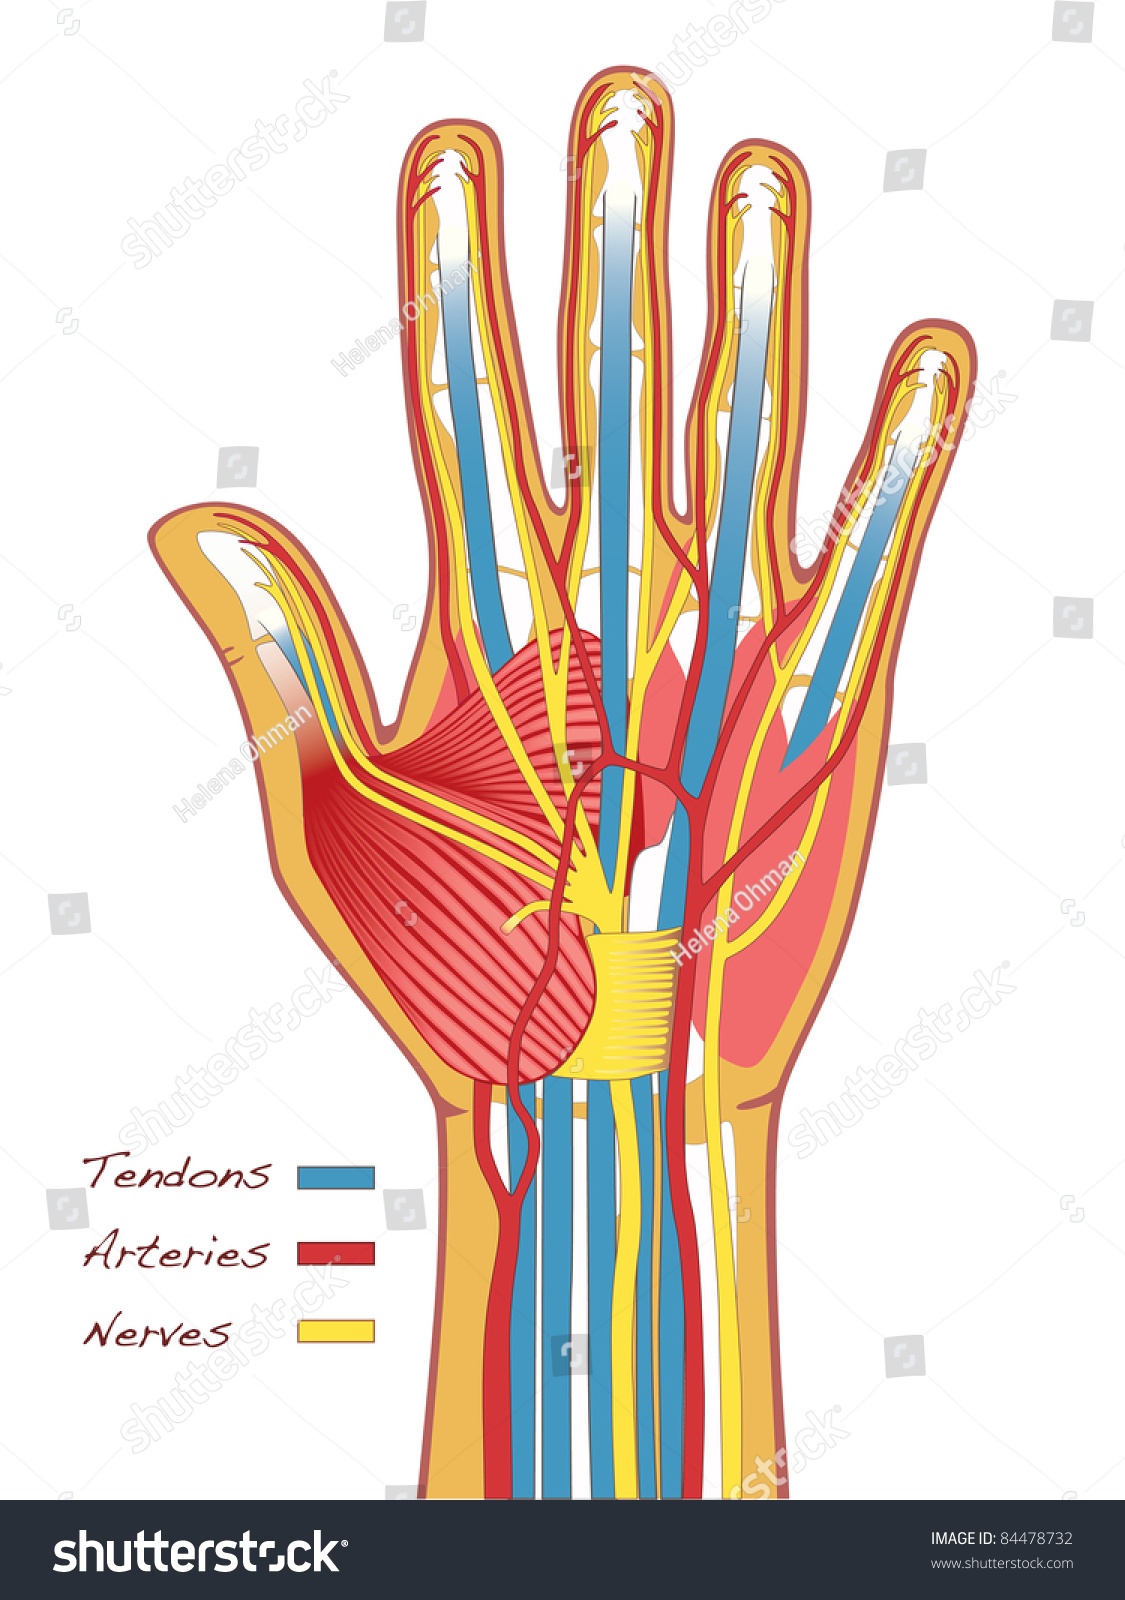 Medical Illustration Hands Anatomy Bones Tendons Stock Vector ...